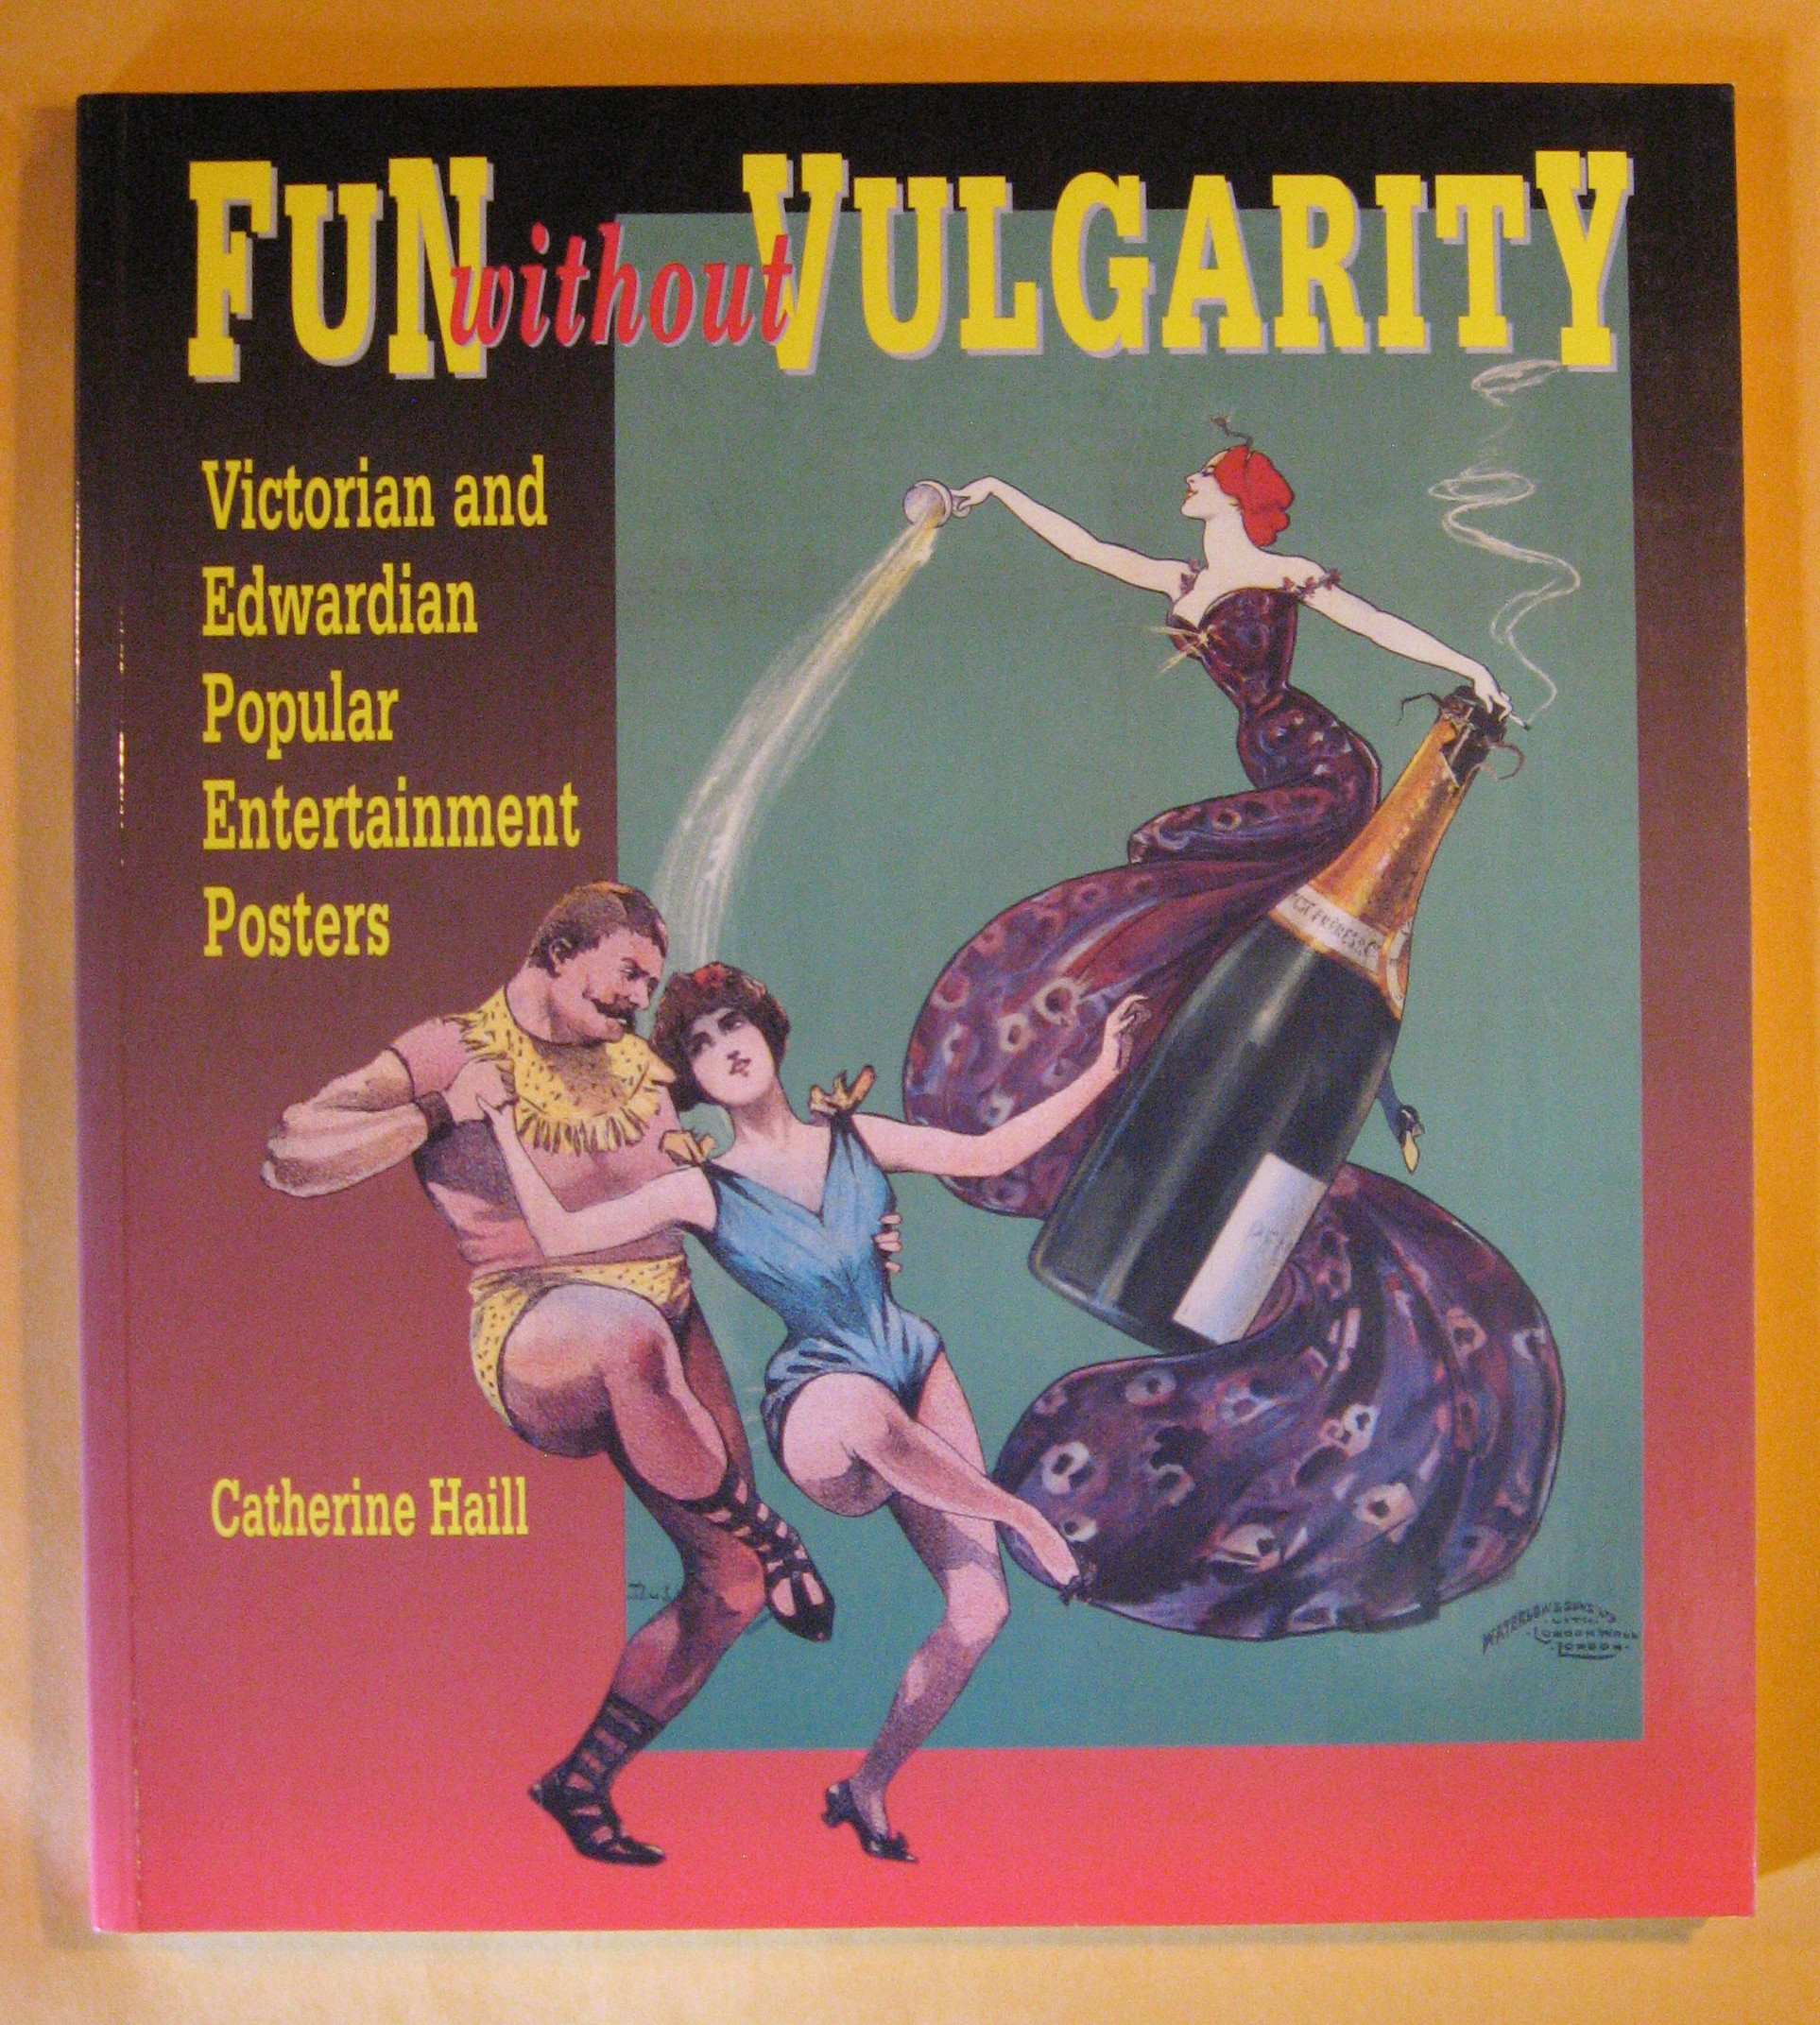 Fun Without Vulgarity: Victorian and Edwardian Popular Entertainment Posters